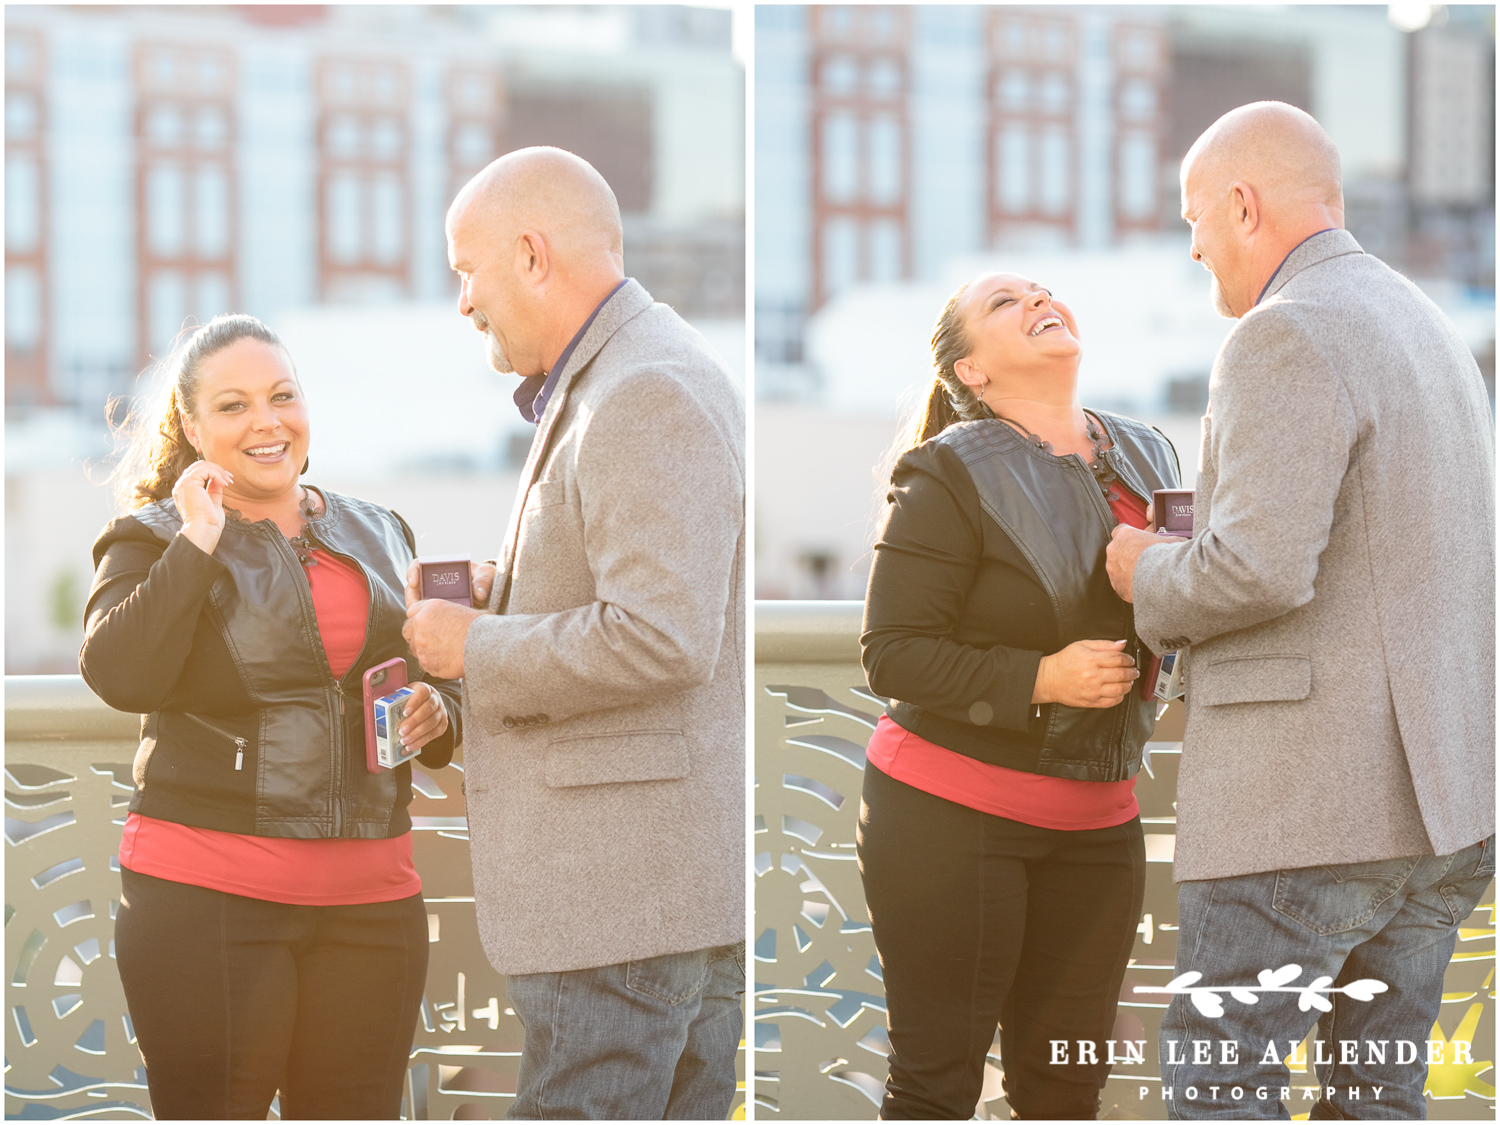 Bride_See_Photographer_During_Marriage_Proposal